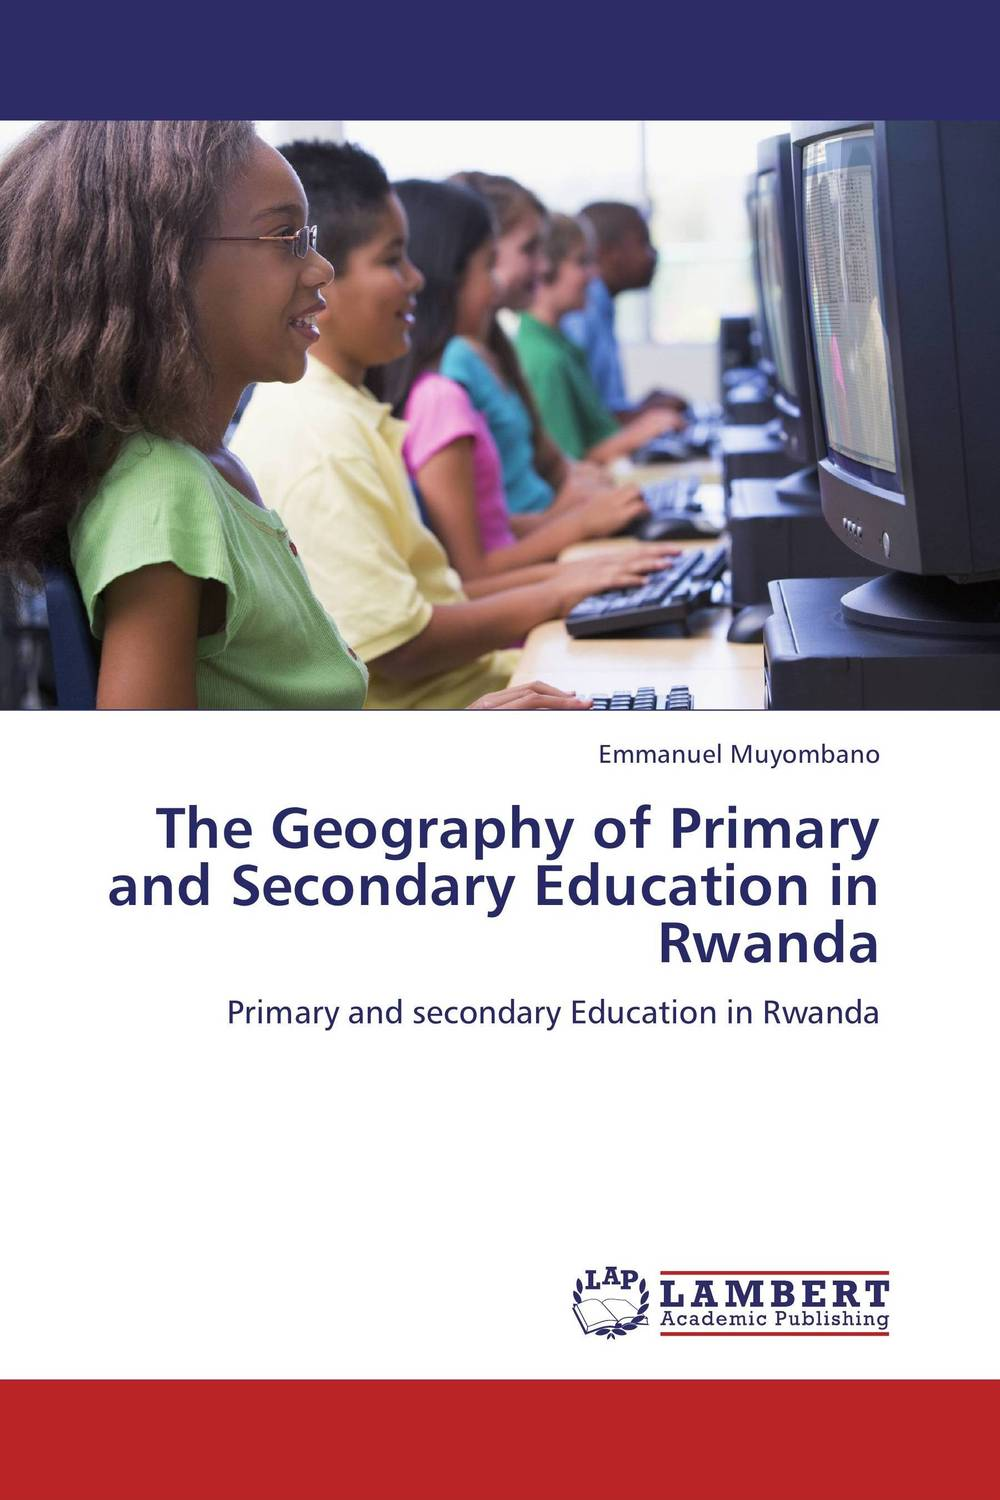 The Geography of Primary and Secondary Education in Rwanda peace education at the national university of rwanda